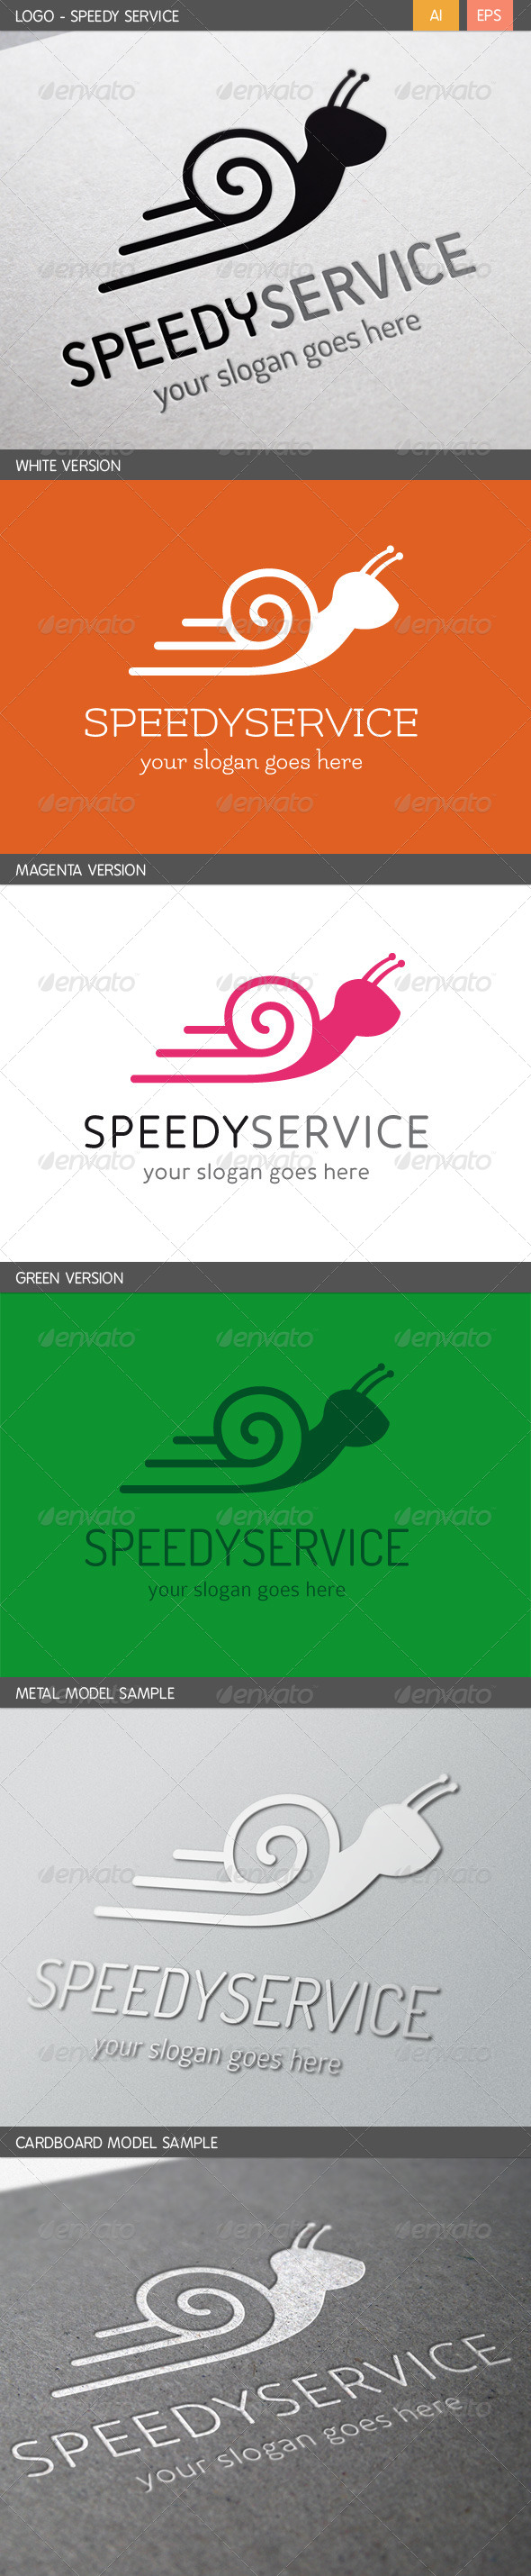 GraphicRiver Speedy Service Logo 5767951